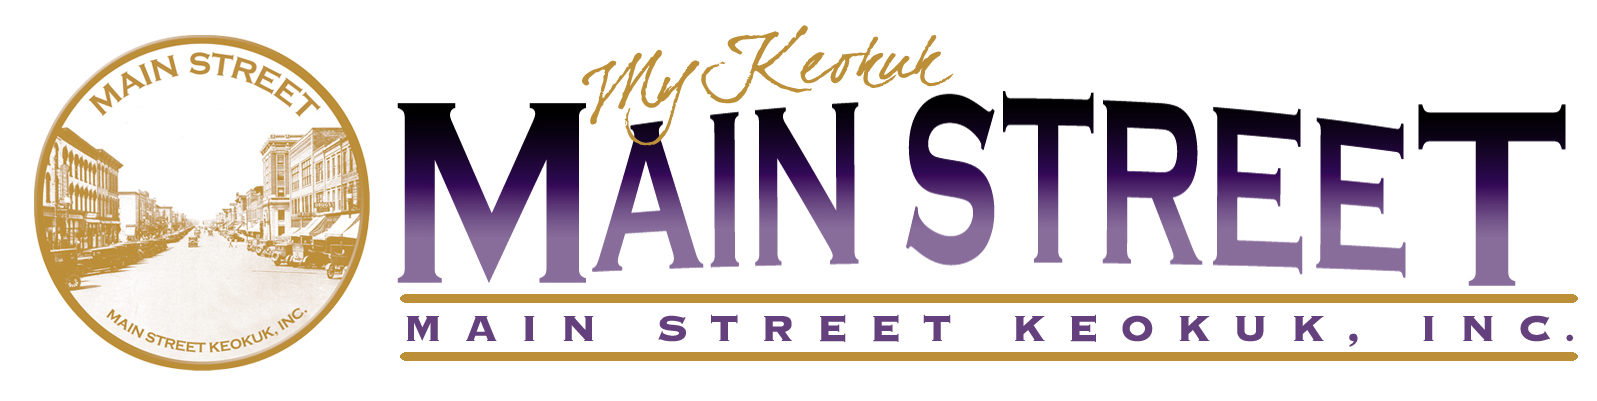 Main Street Keokuk, Inc.